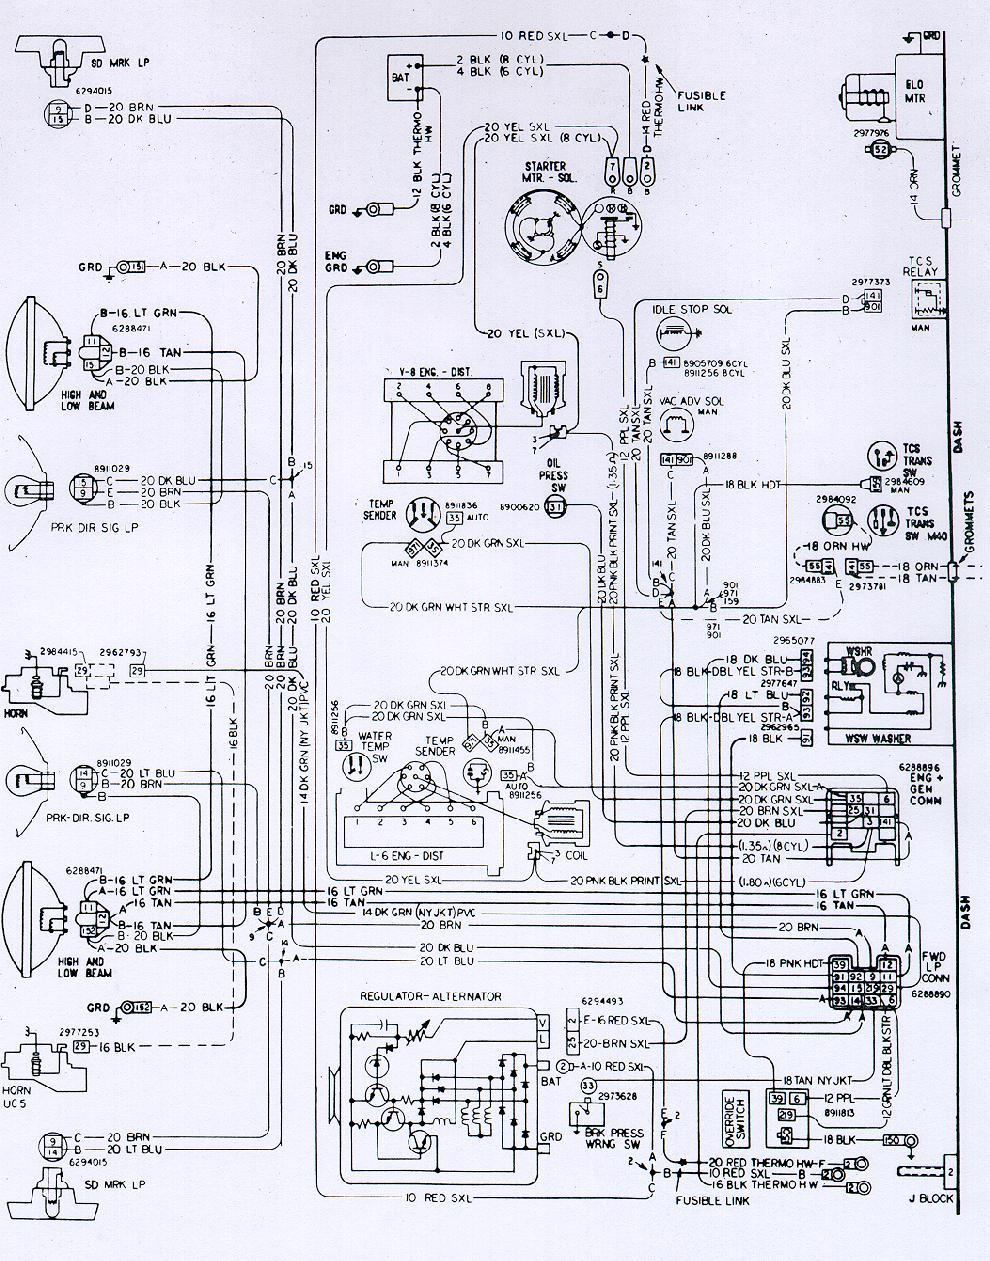 hight resolution of 1968 camaro tic toc tach wiring diagram best wiring library1968 camaro tic toc tach wiring diagram